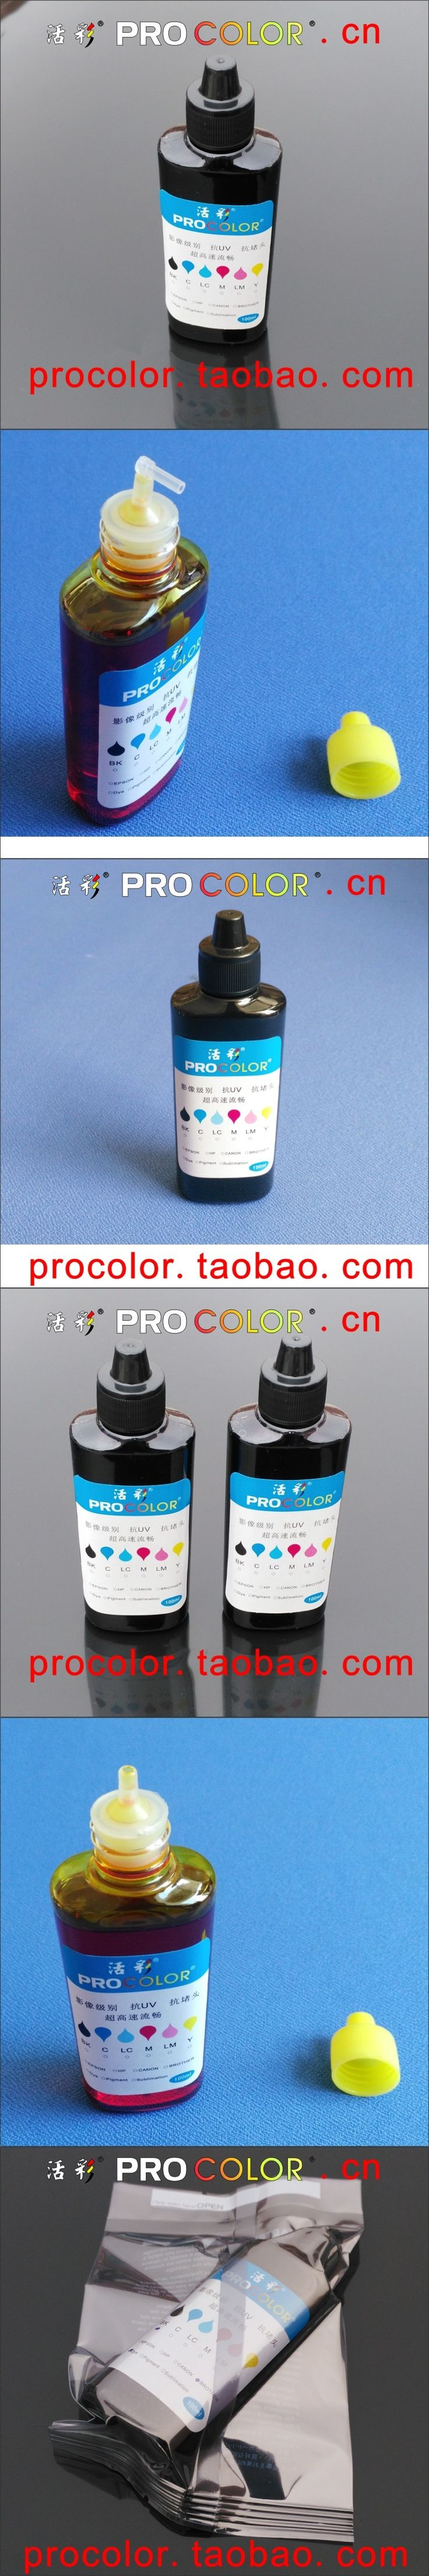 PROCOLOR Top quality Black ink Refill kit for CANON HP all inkjet printer cartridge CISS Refill ink system 400ml black dye ink